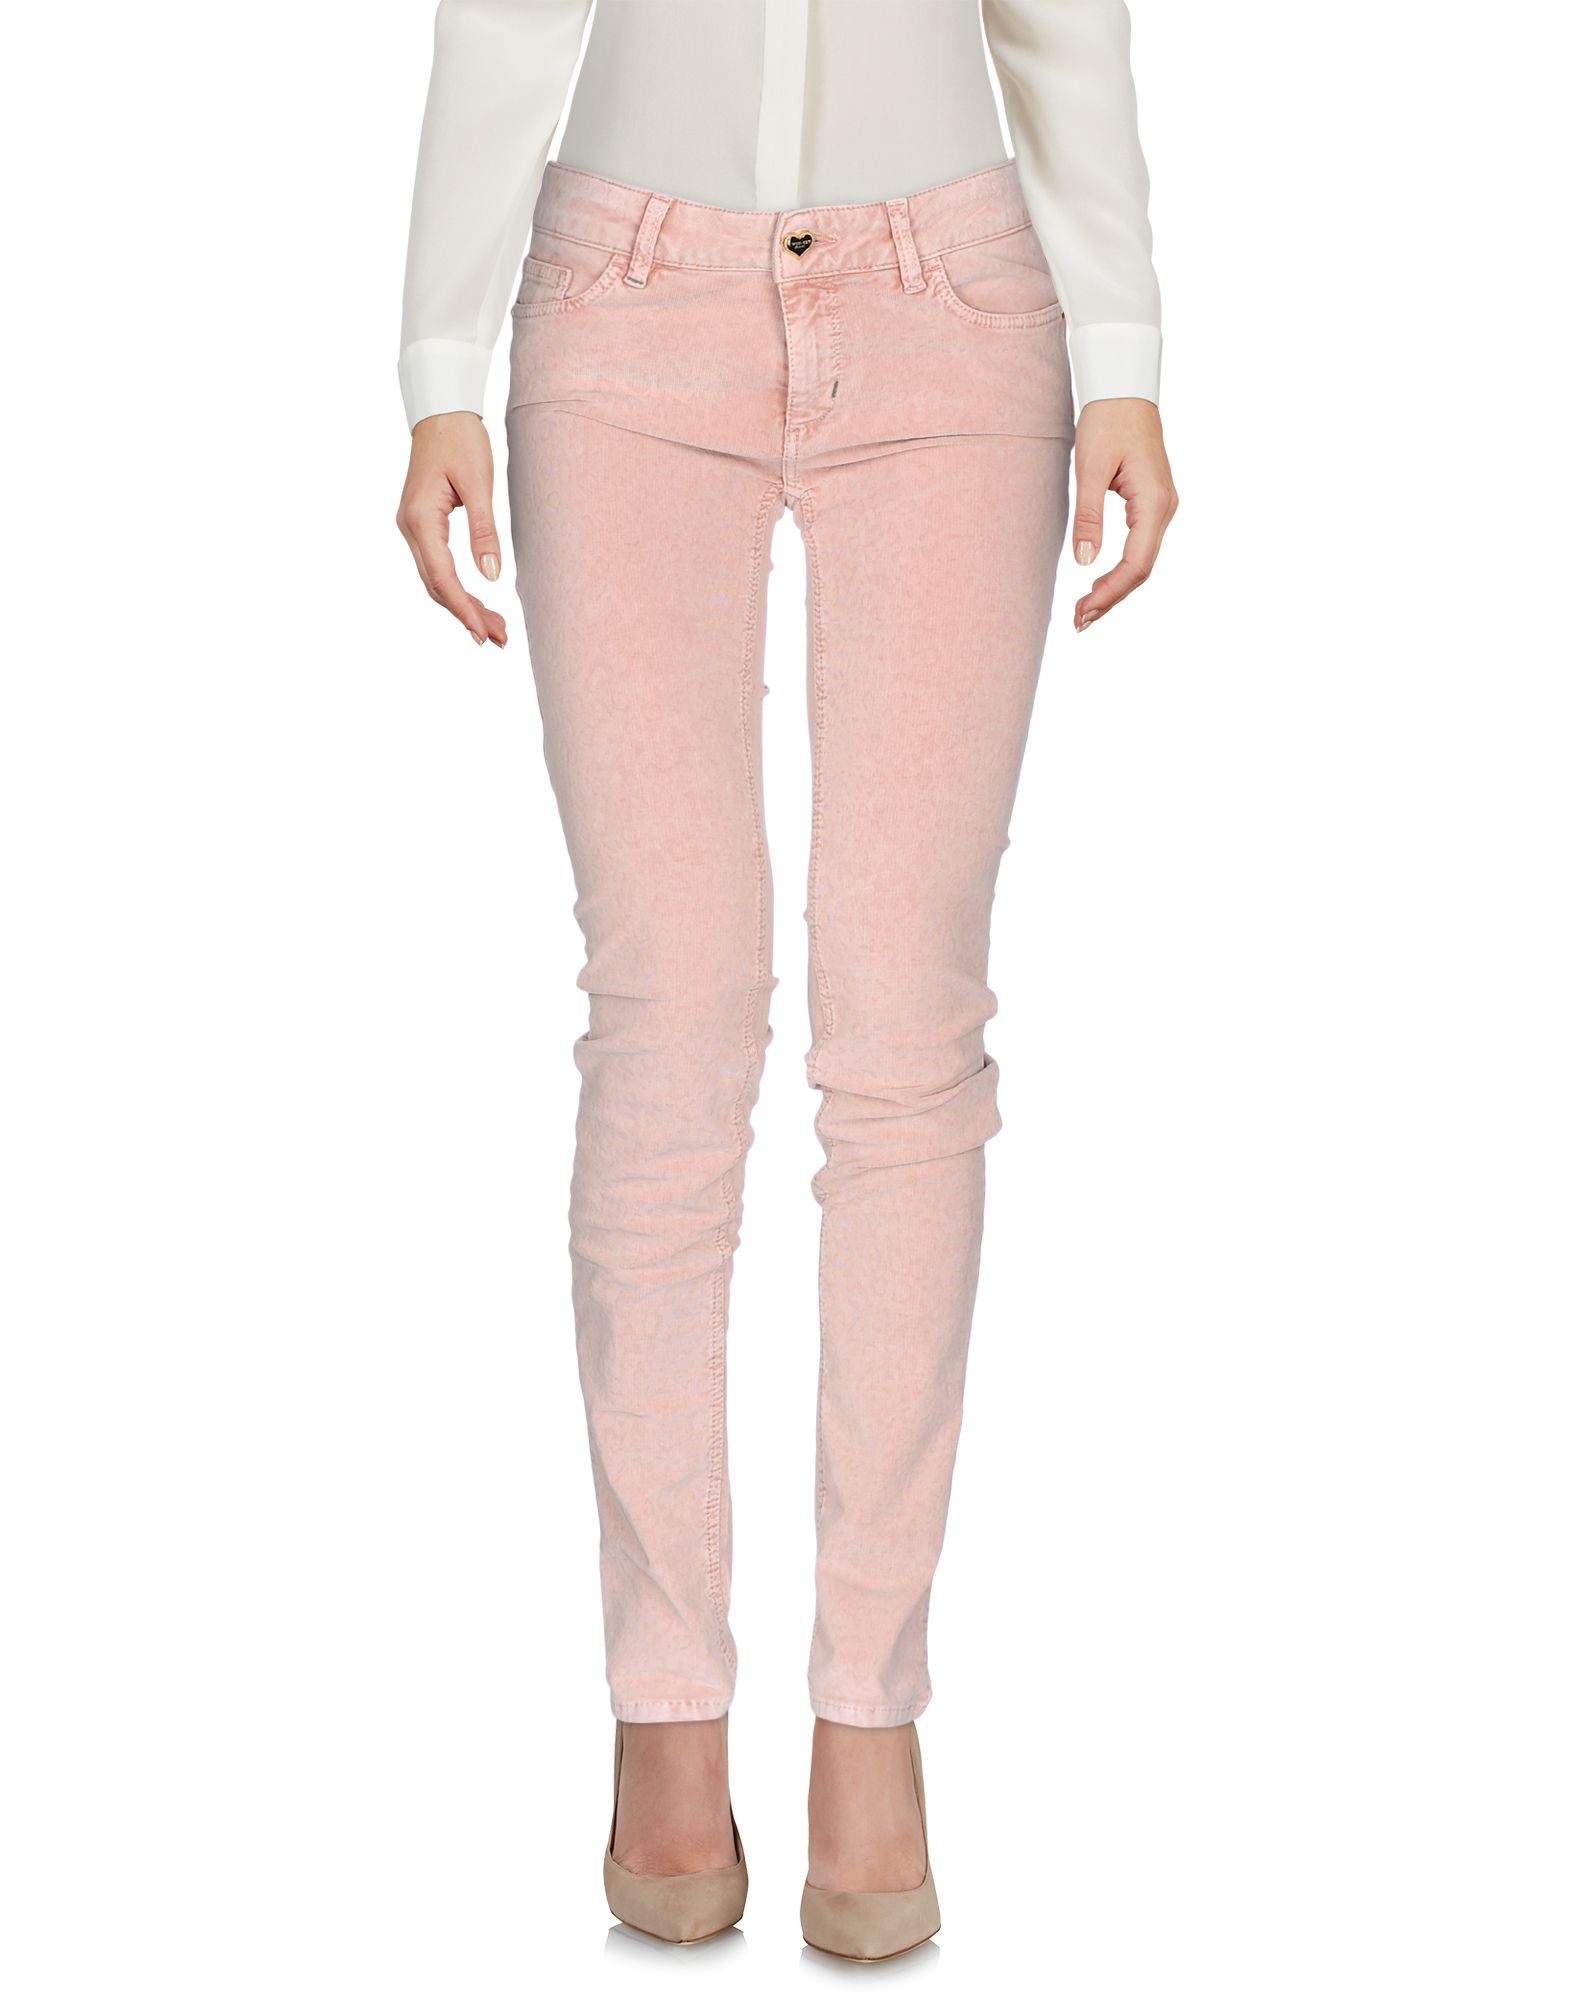 TWIN-SET JEANS Casual Pants in Pink